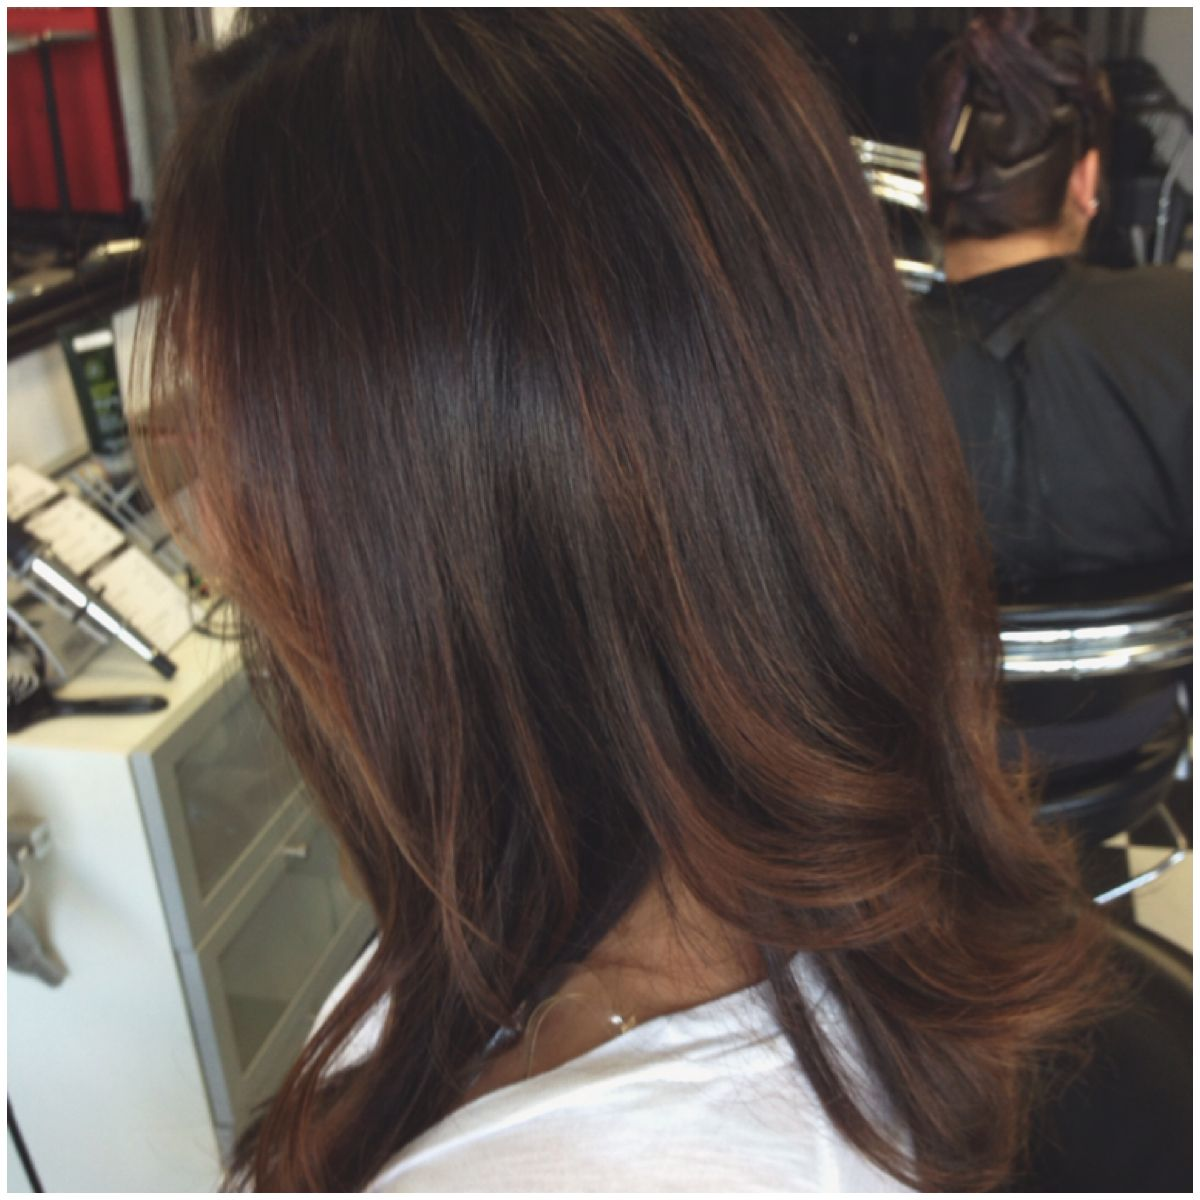 A beautiful Ombre by Primary Stylist Berlinda!  Make these subtle yet dramatic change in your look with Berlinda today! Give us a call today: 714-952-2030